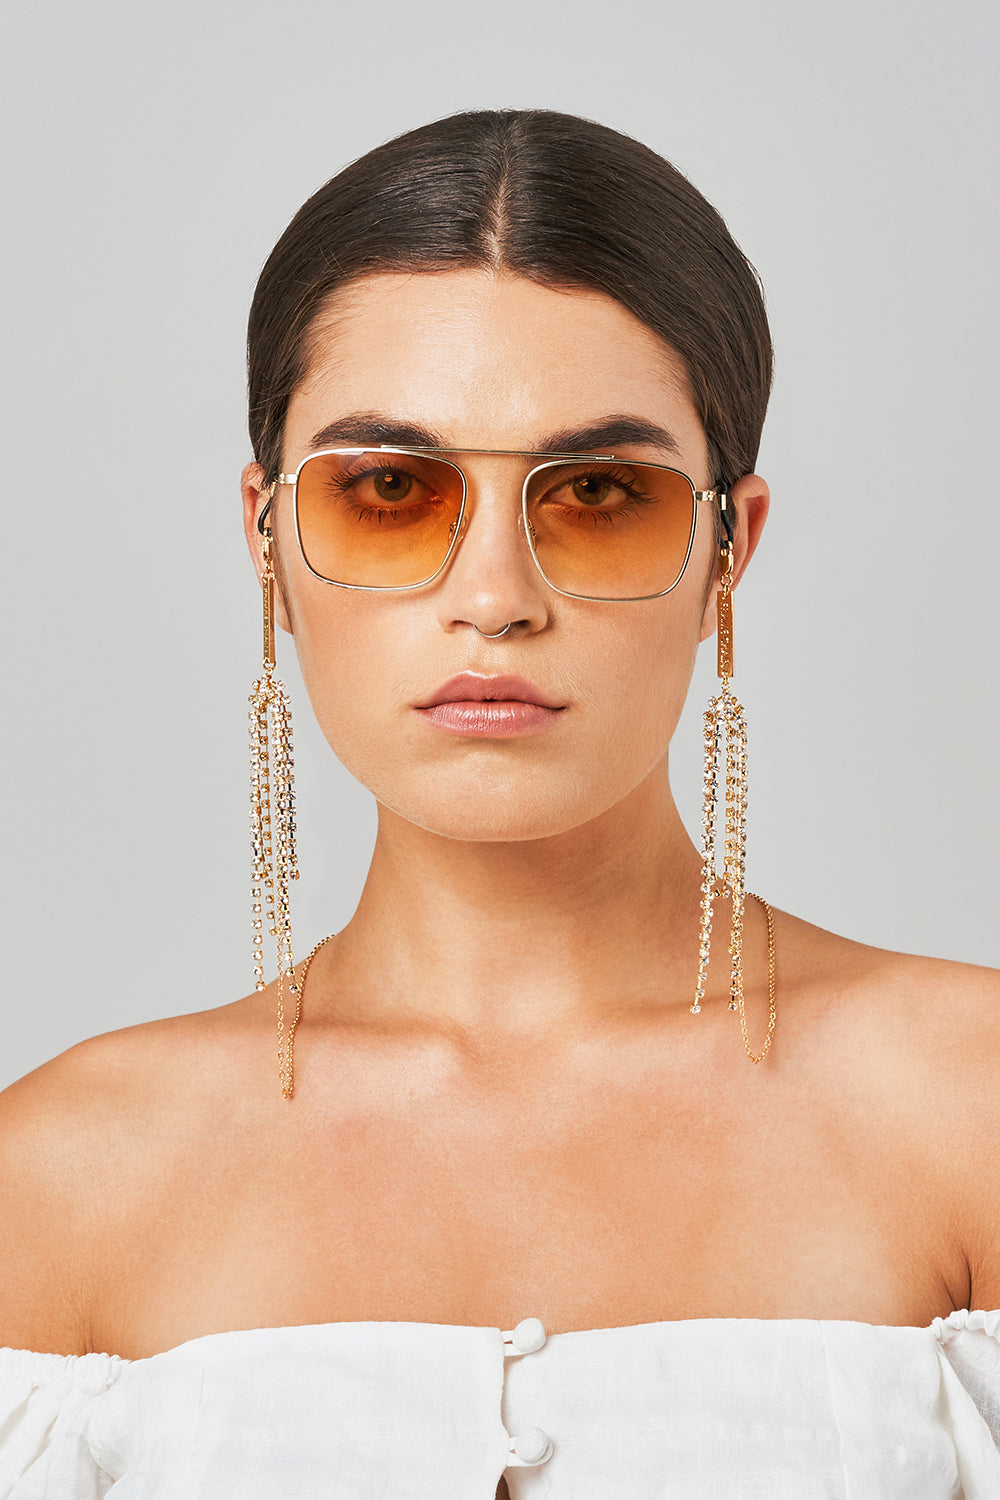 FRAME CHAIN - DISCO WHITE CRYSTAL in YELLOW GOLD - Glasses Chain